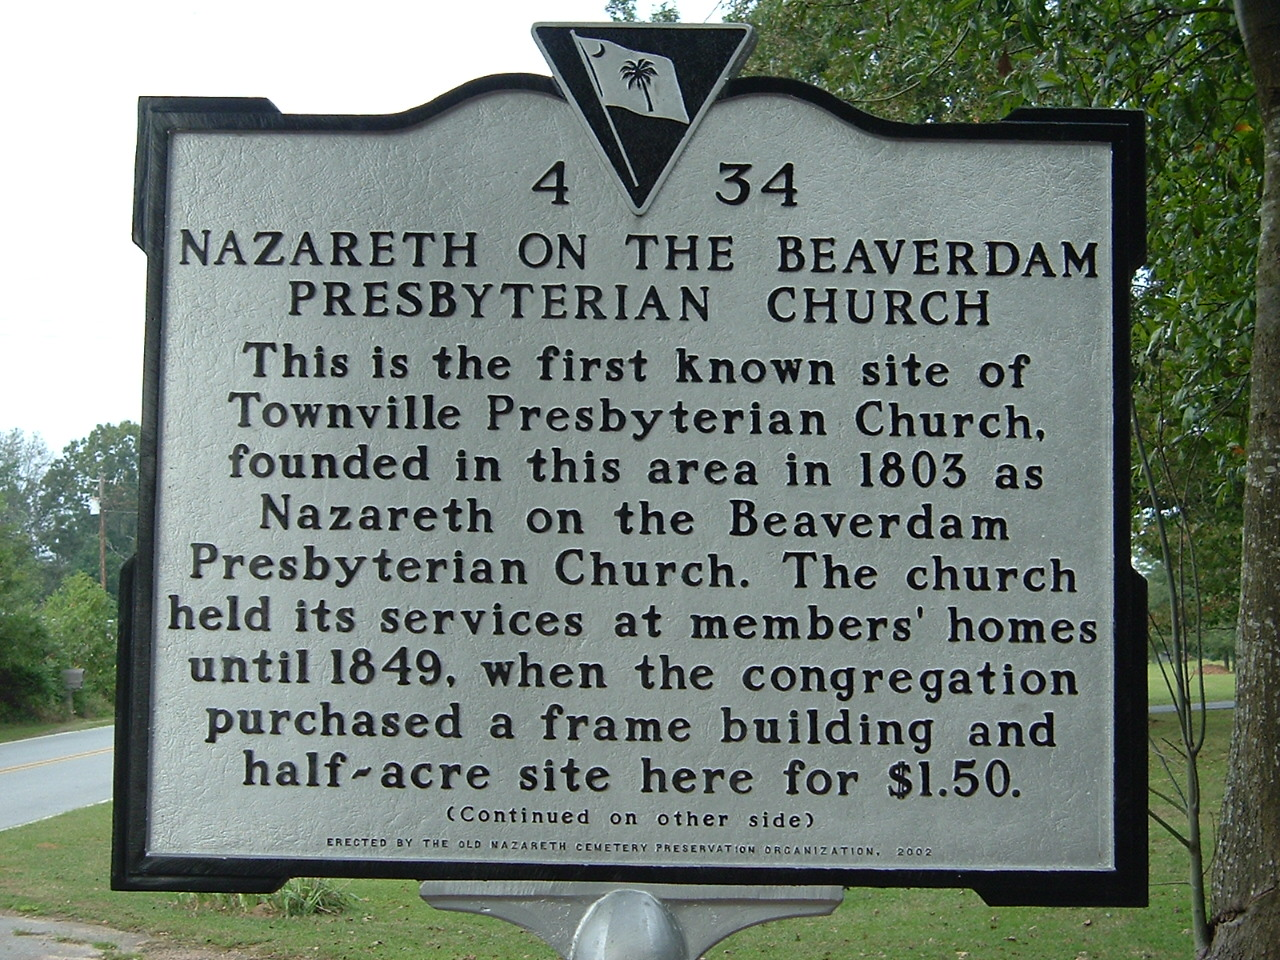 Image:Townville Presbyterian Church sign 1.jpg